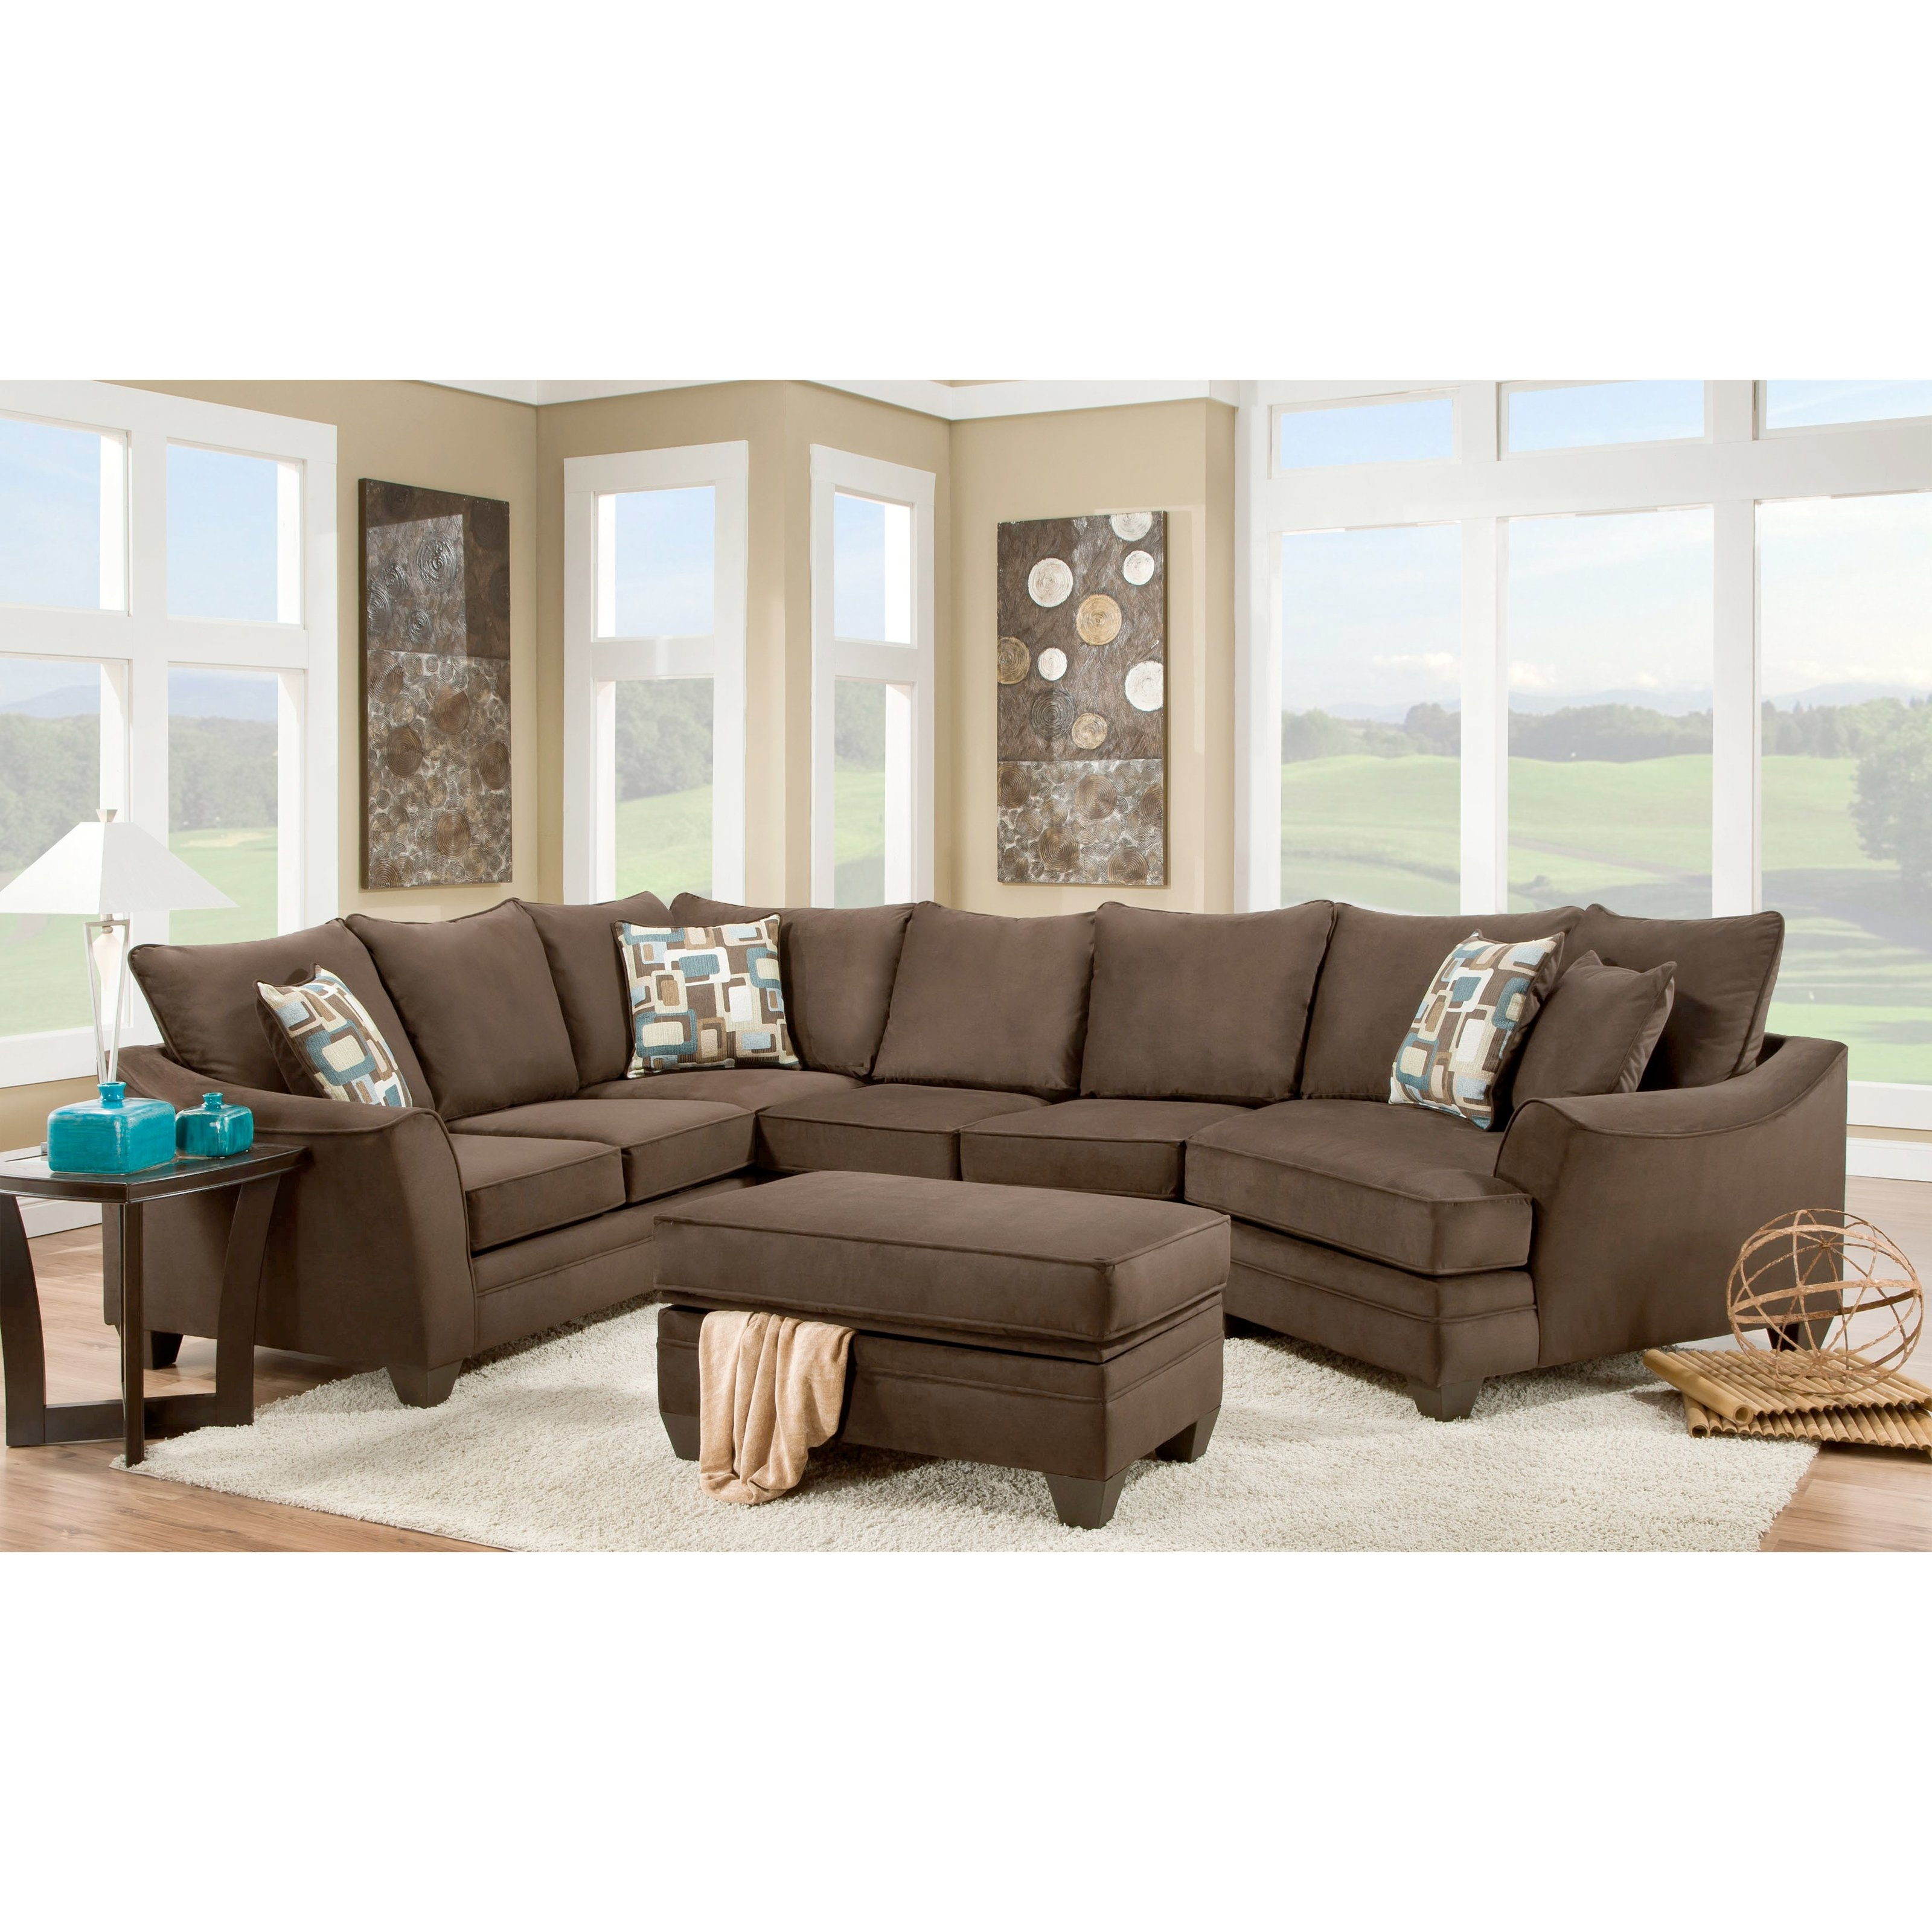 Featured Image of Sectional Sofas In Greensboro Nc